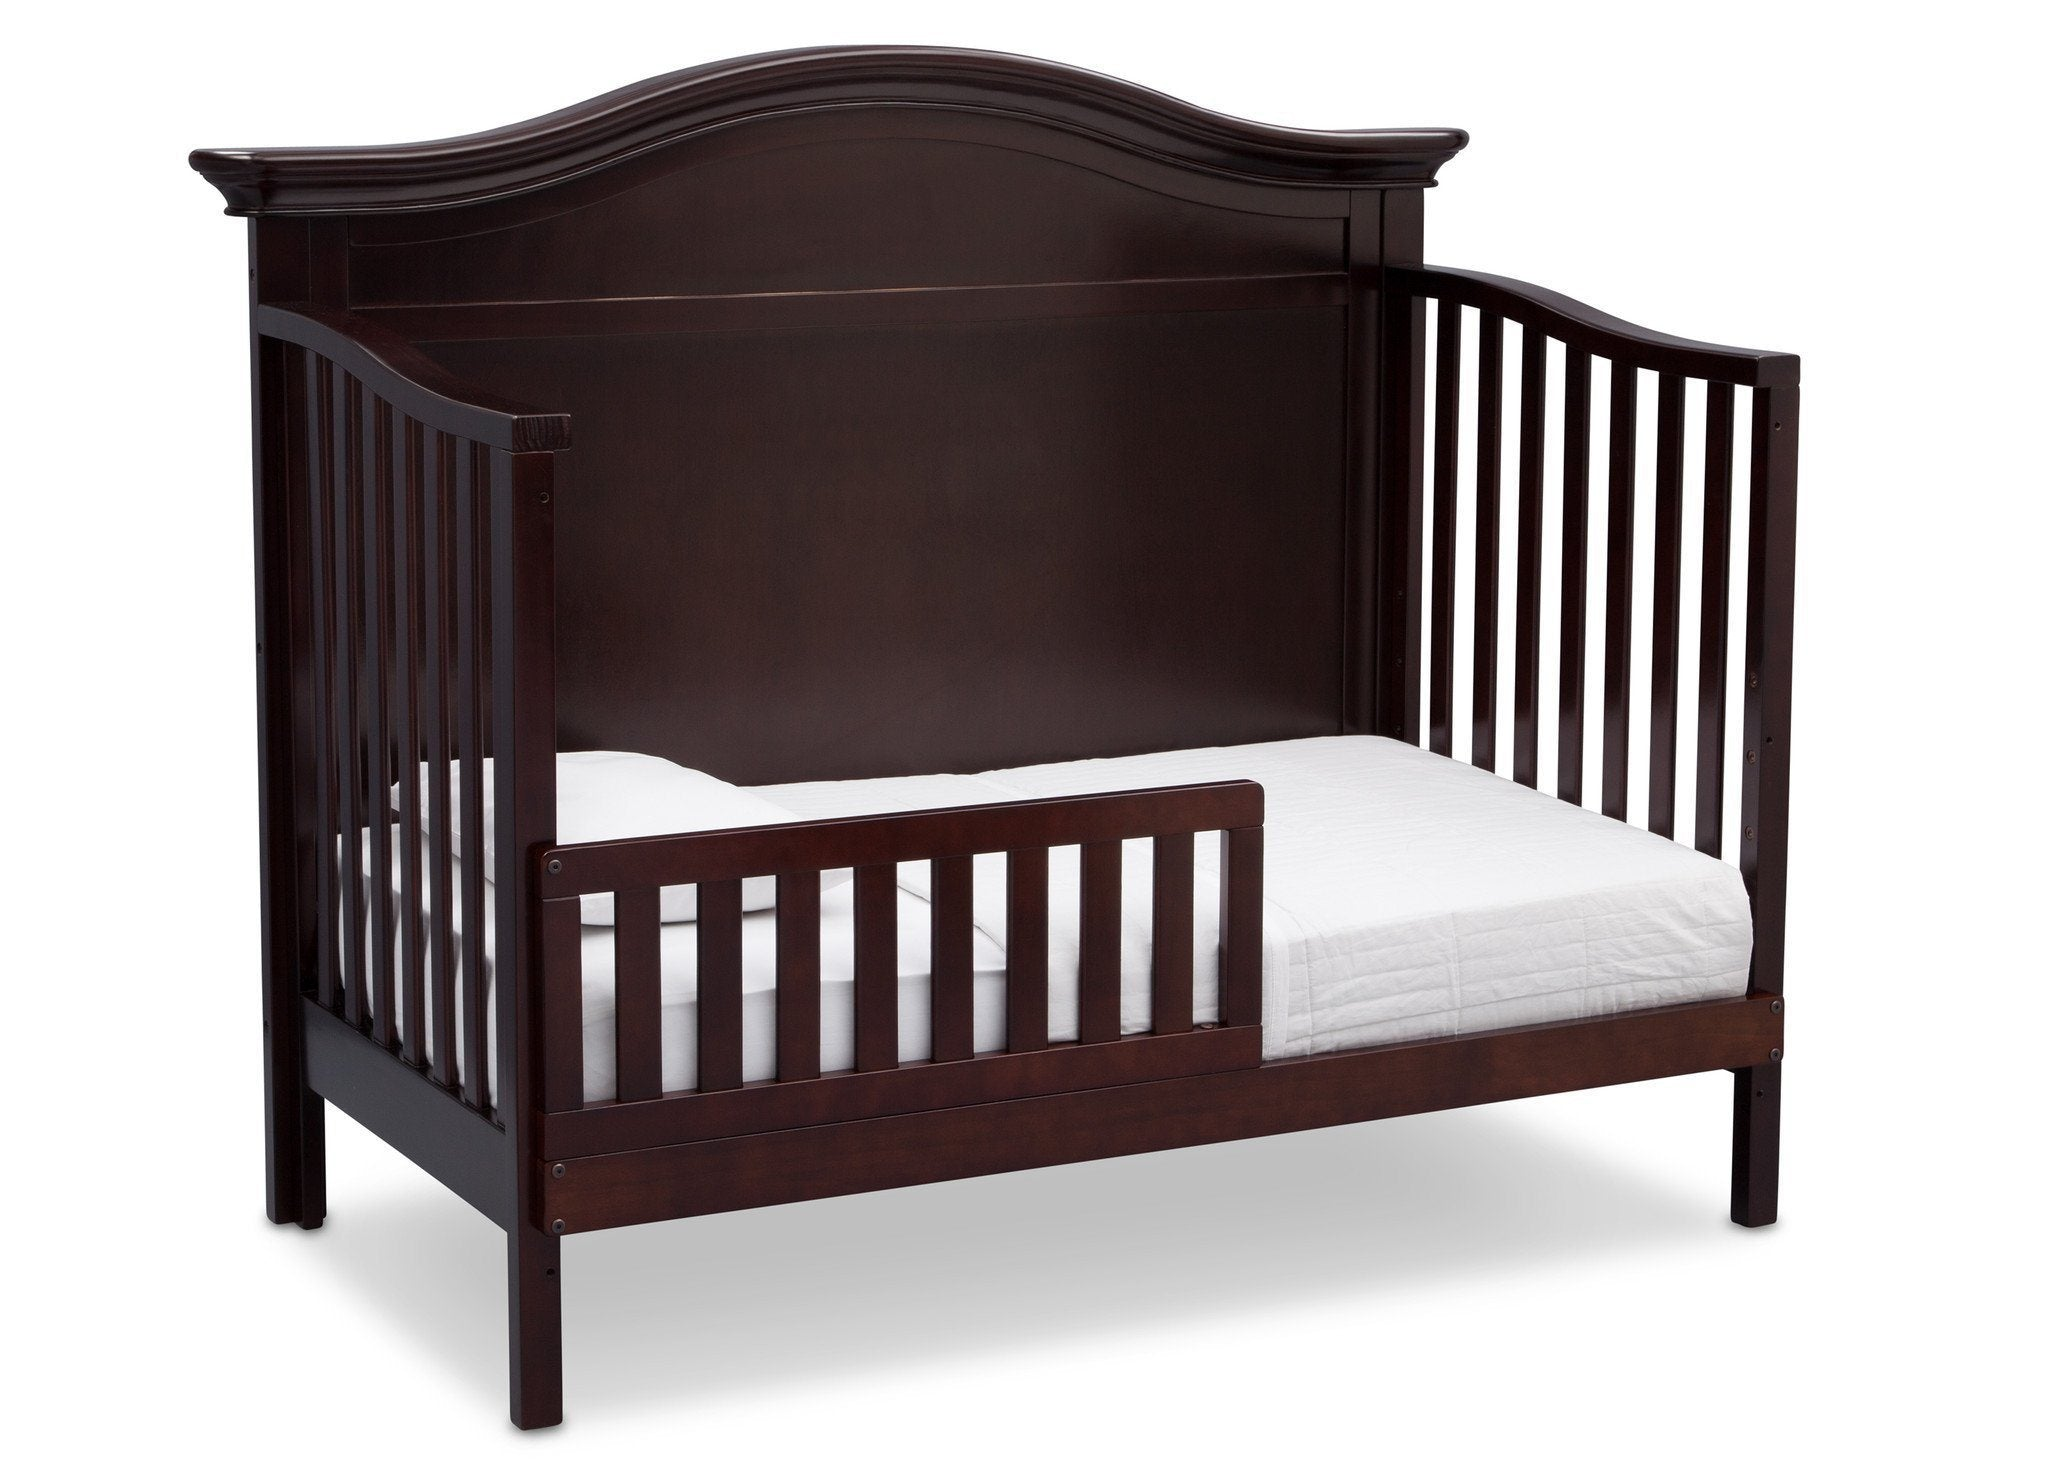 Serta Dark Chocolate (207) Bethpage 4-in-1 Crib, Side View with Toddler Bed Conversion c5c